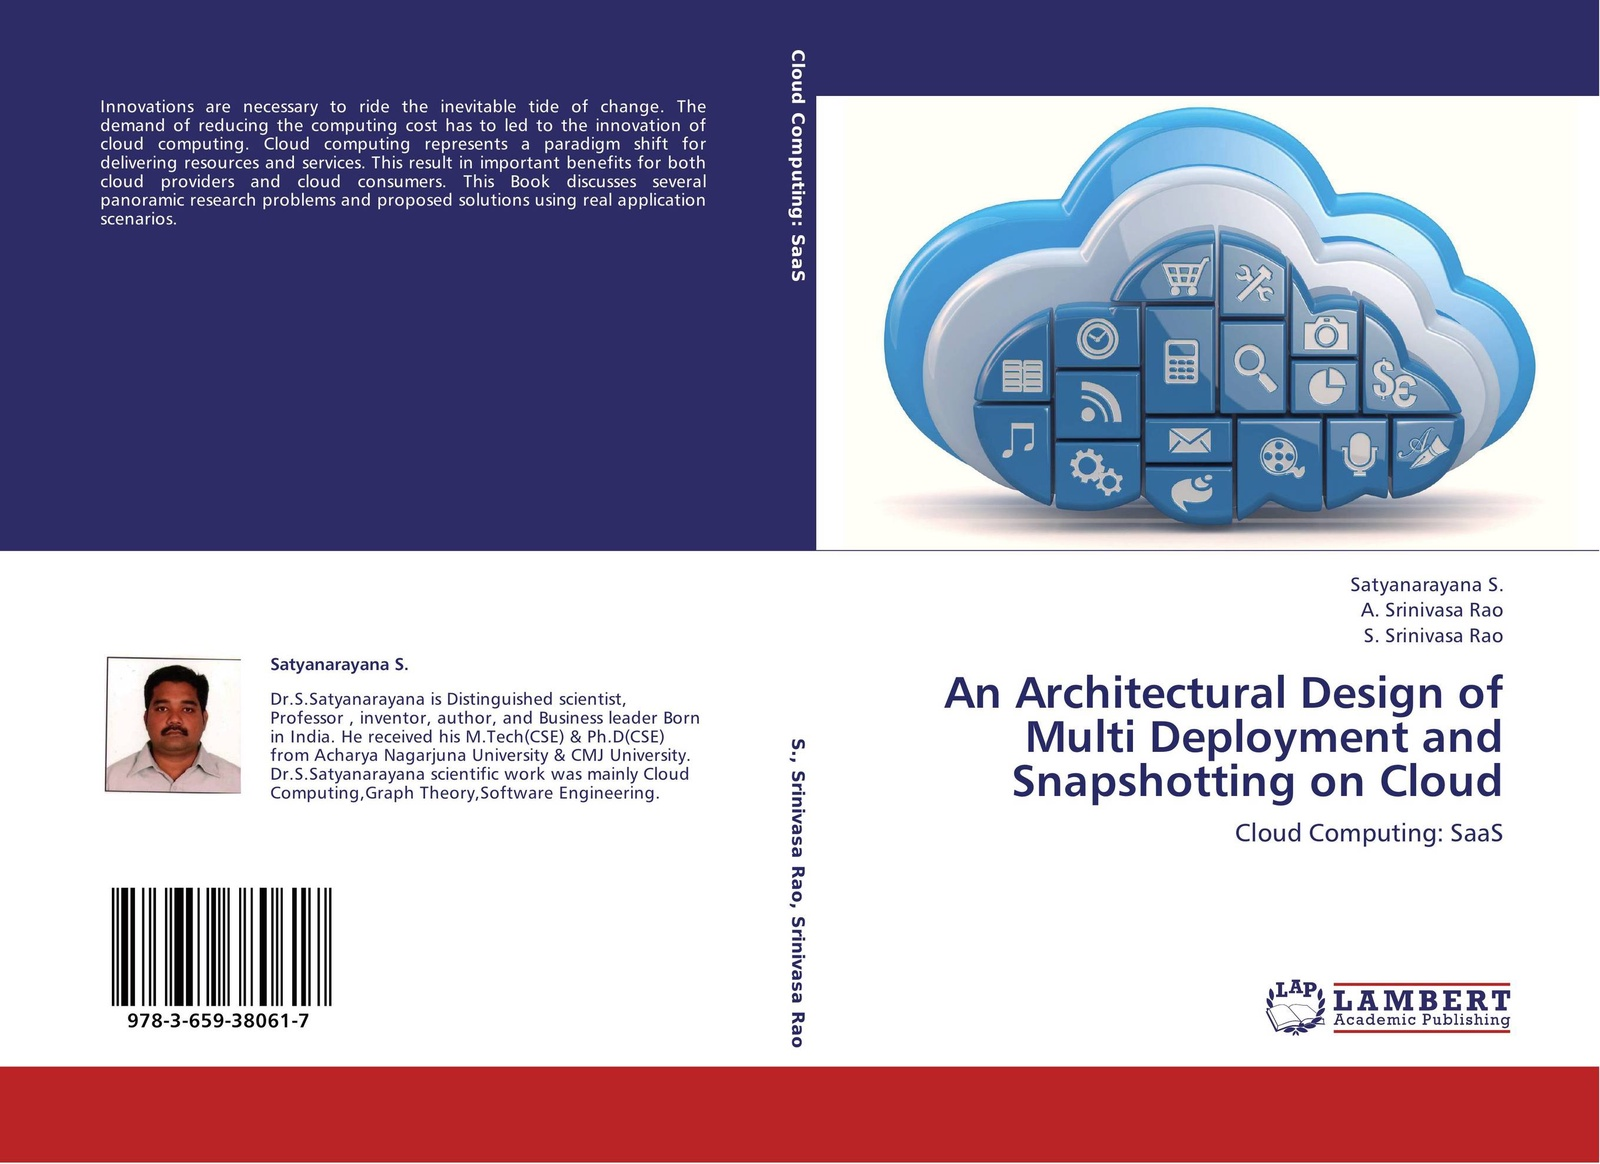 цены на Satyanarayana S.,A. Srinivasa Rao and S. Srinivasa Rao An Architectural Design of Multi Deployment and Snapshotting on Cloud